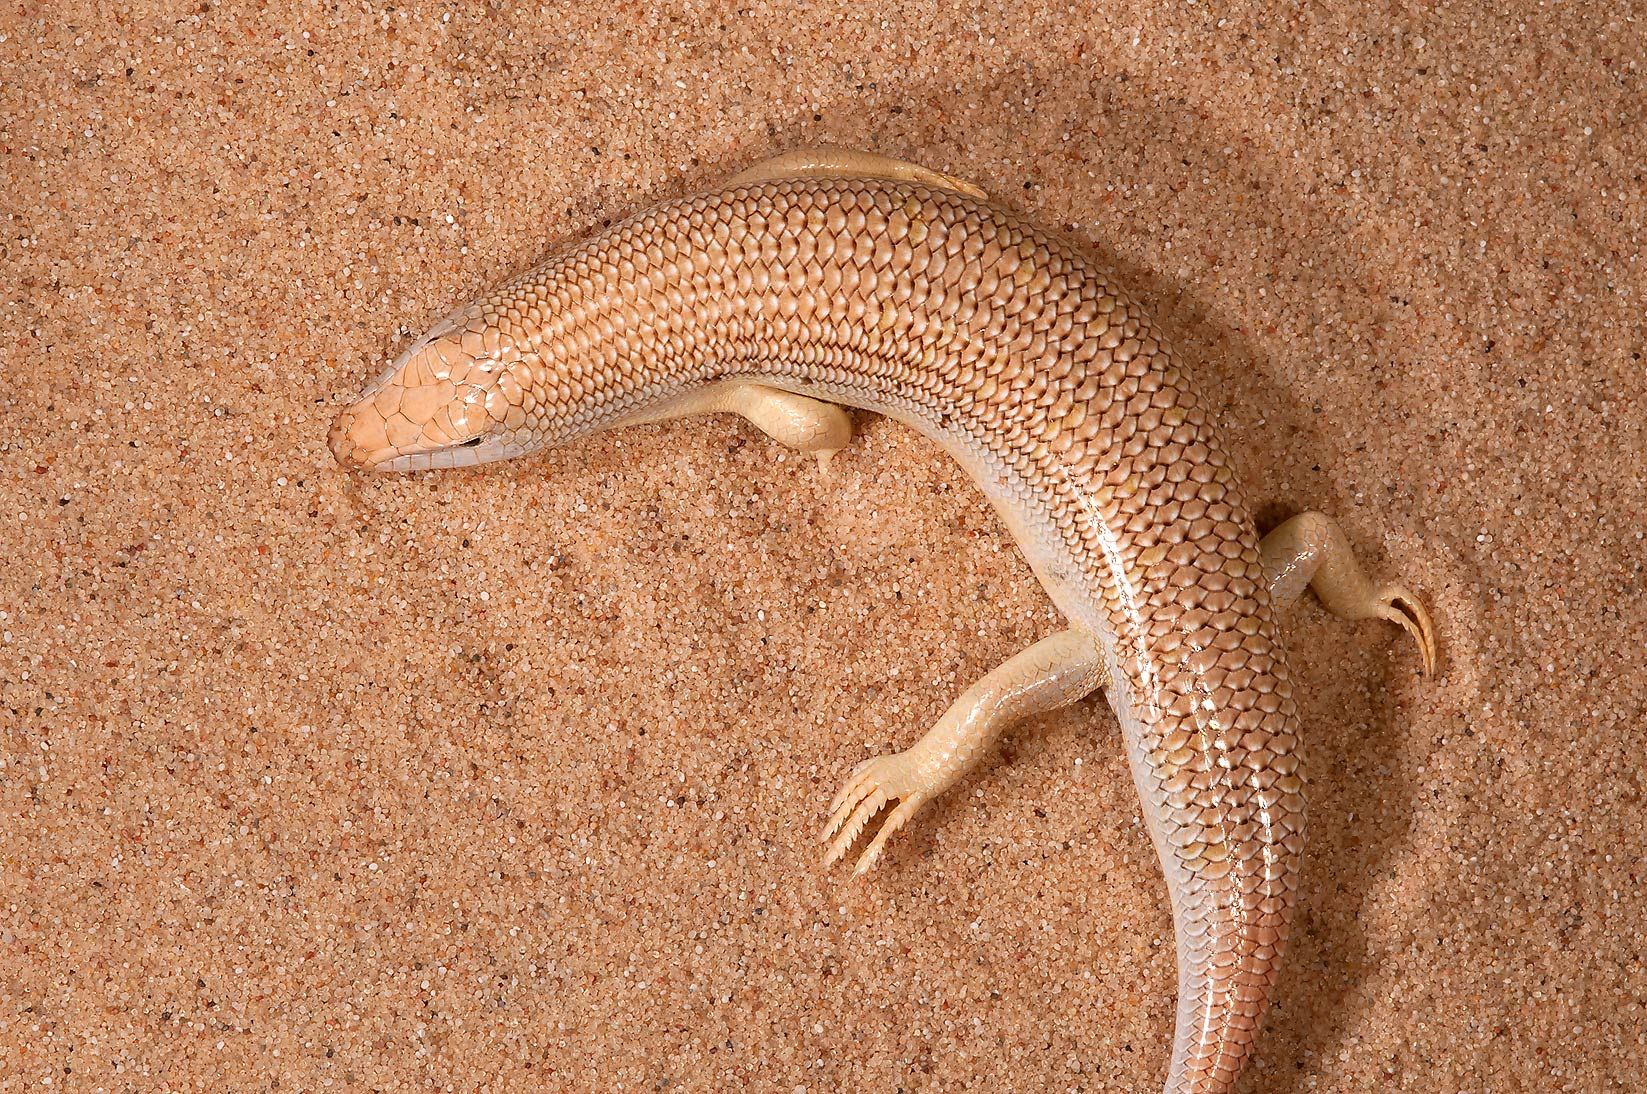 Desert lizard Eastern sandfish (skink, Chalcides...Mesayeed, south-west from Doha. Qatar